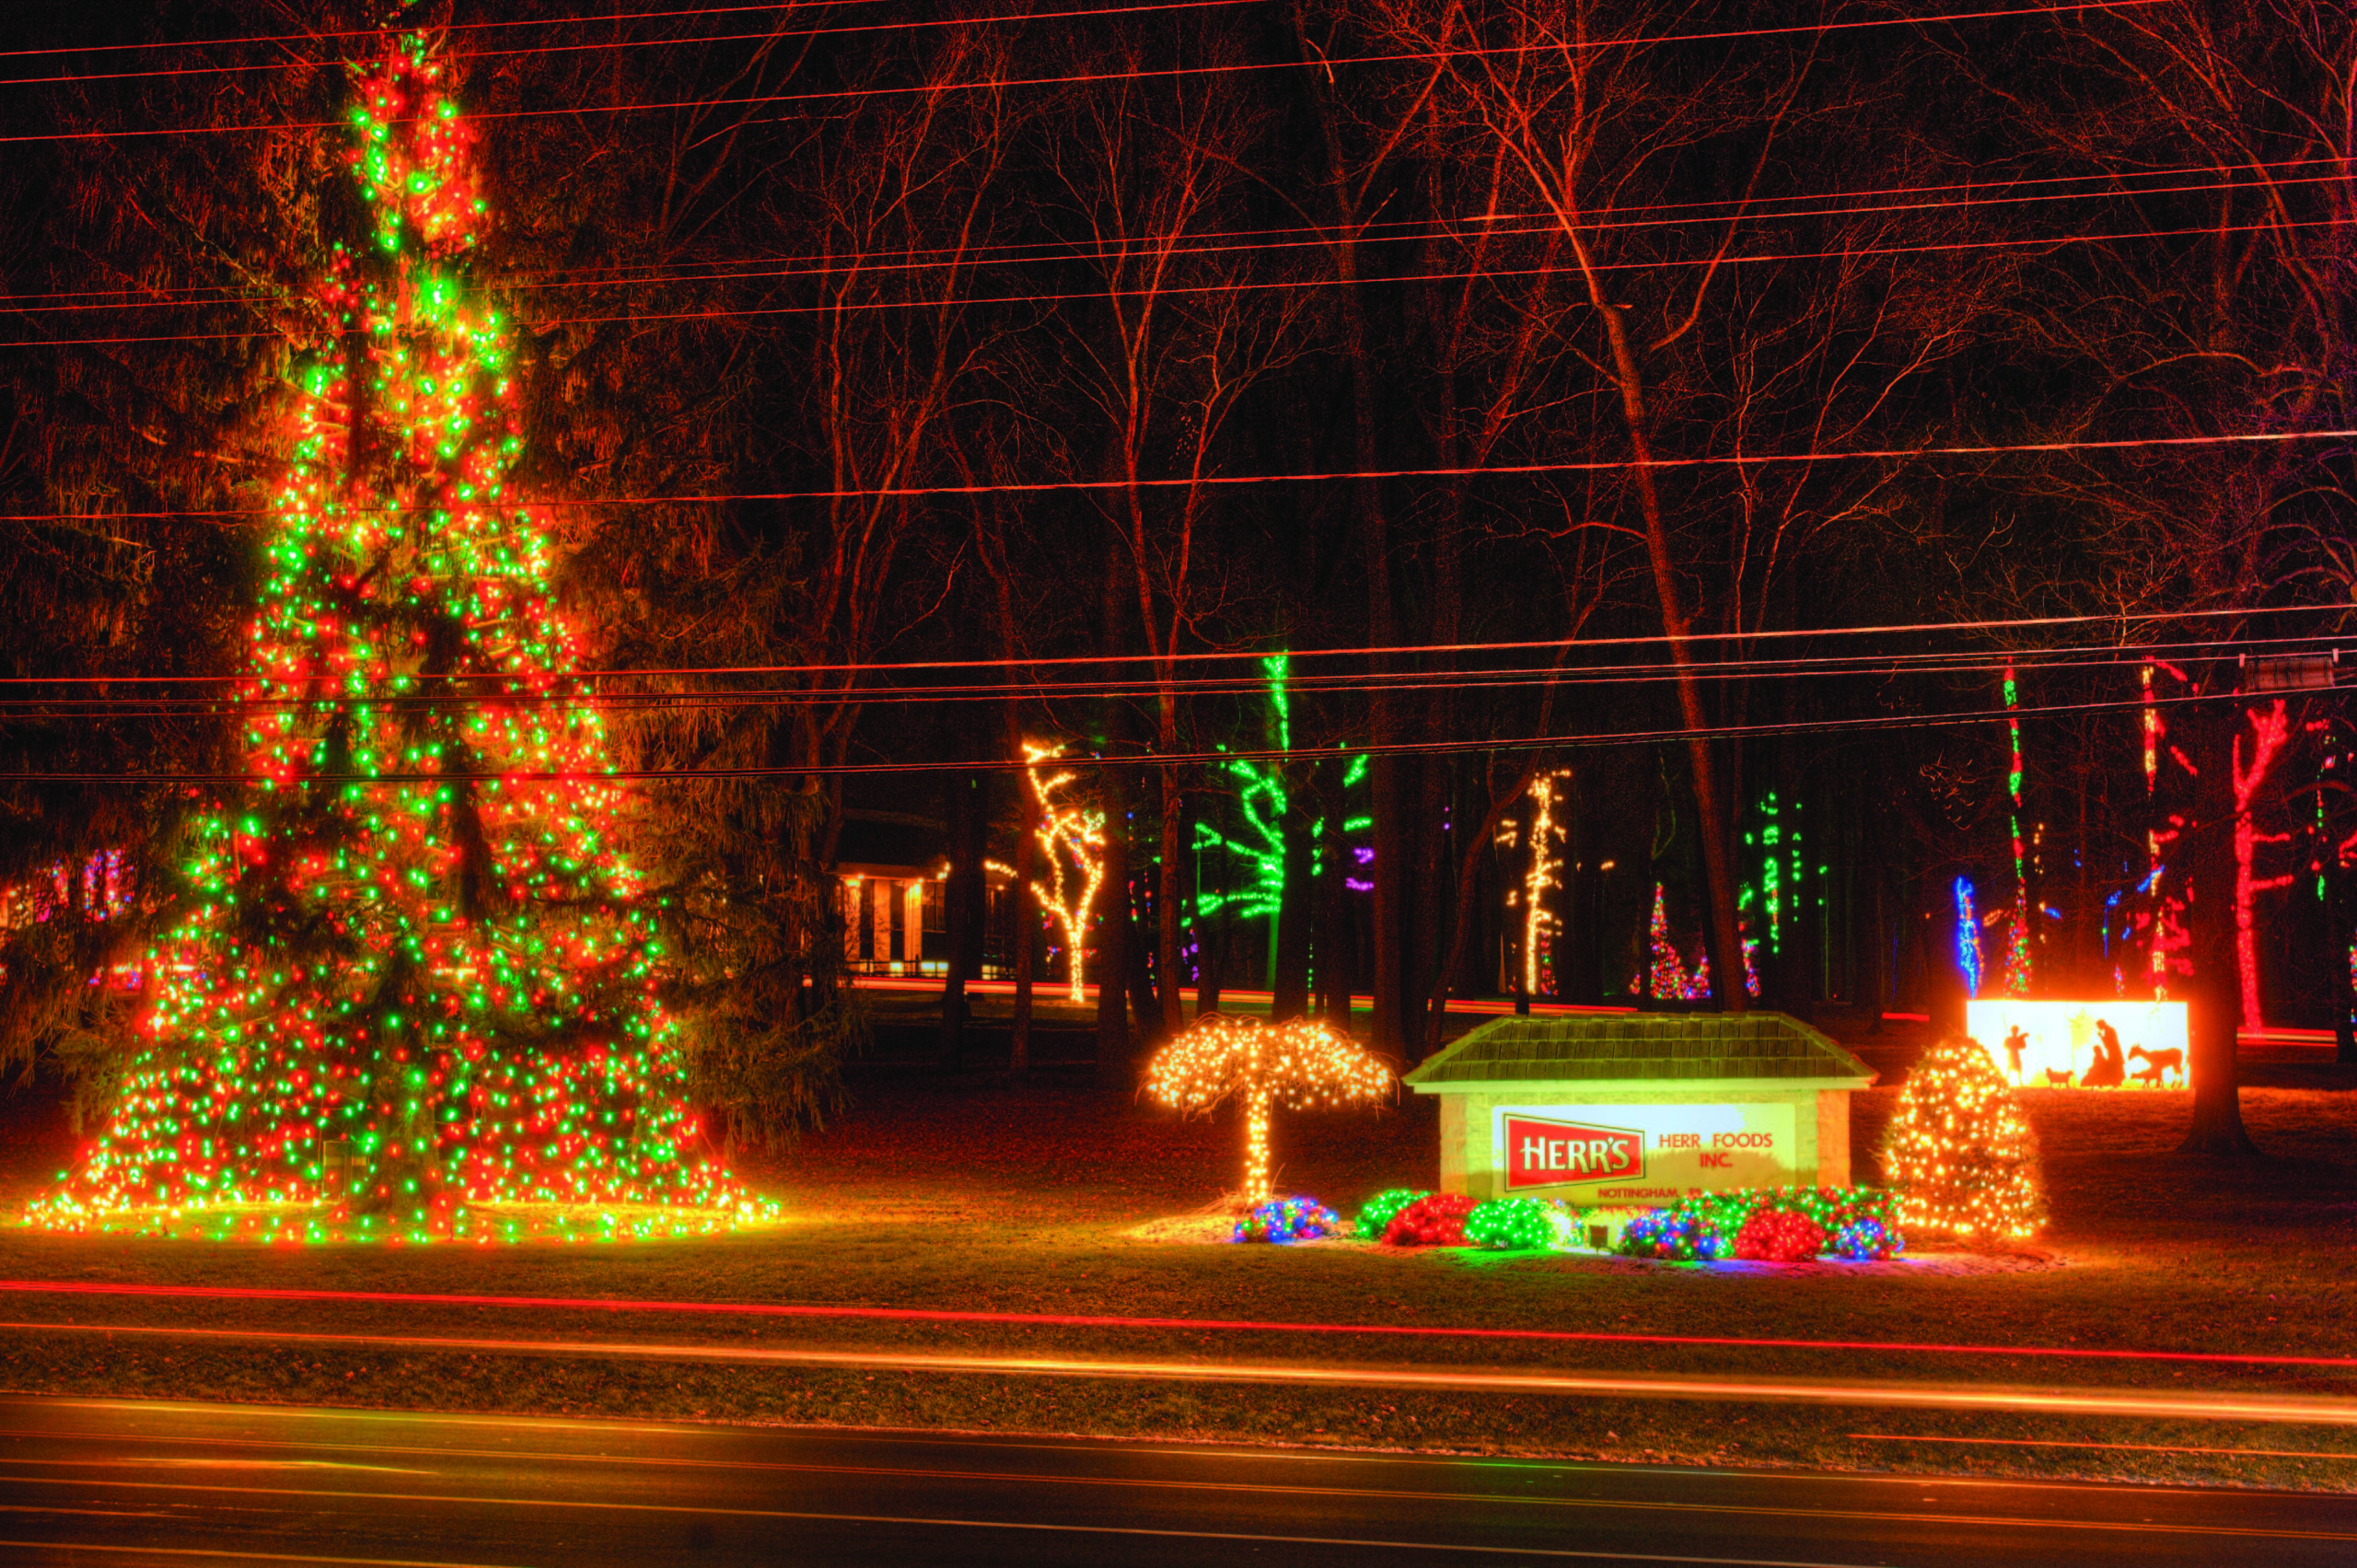 2020 Christmas Light Display Herr's Annual Christmas Lights Display 2020   Chester County